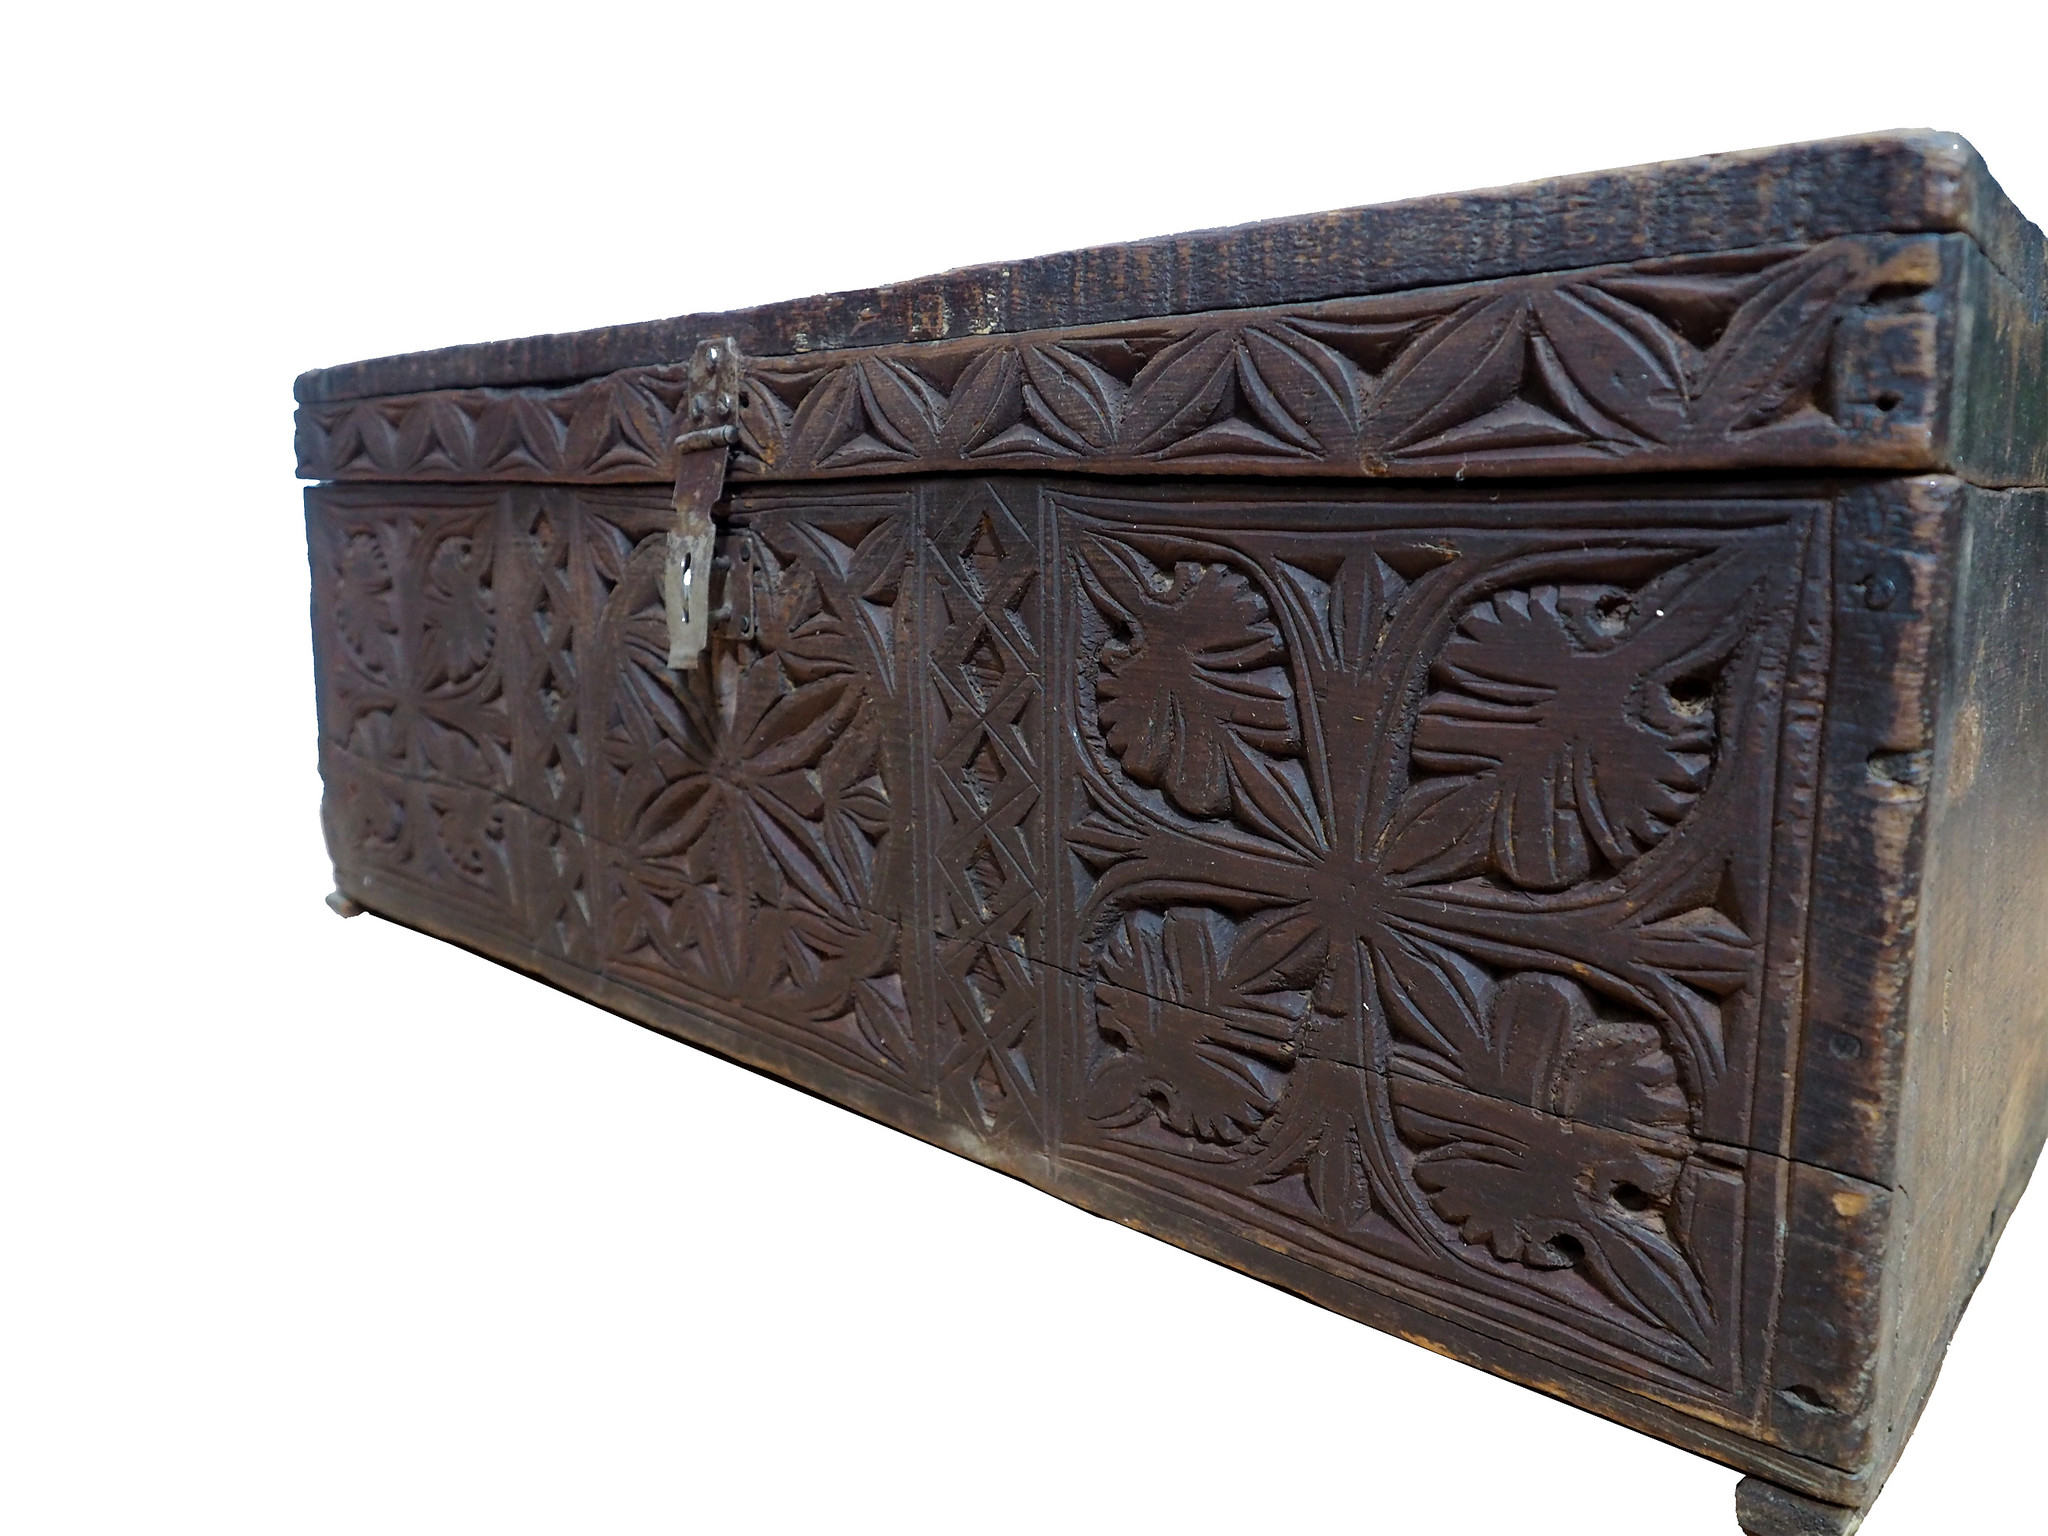 antique 19th century orient vintage cedar wood treasure Dowry Chest from Nuristan Afghanistan NO:20/G